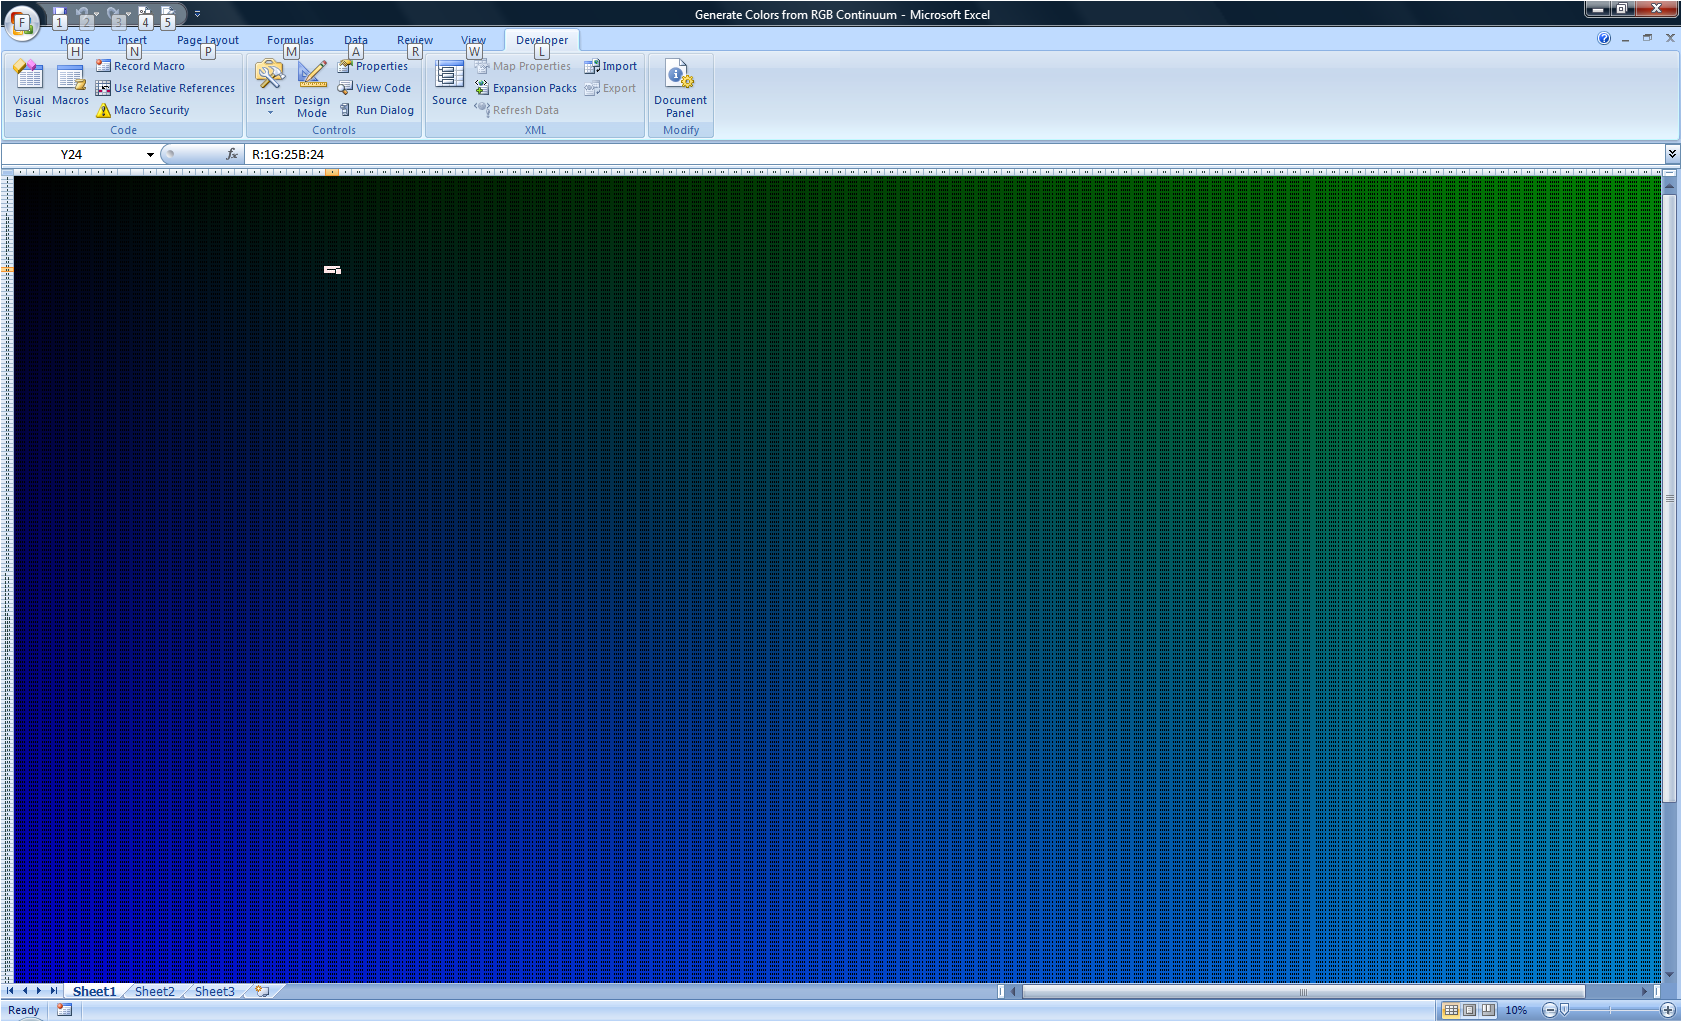 Looking for RGB values from Excel 2010 Color Palette